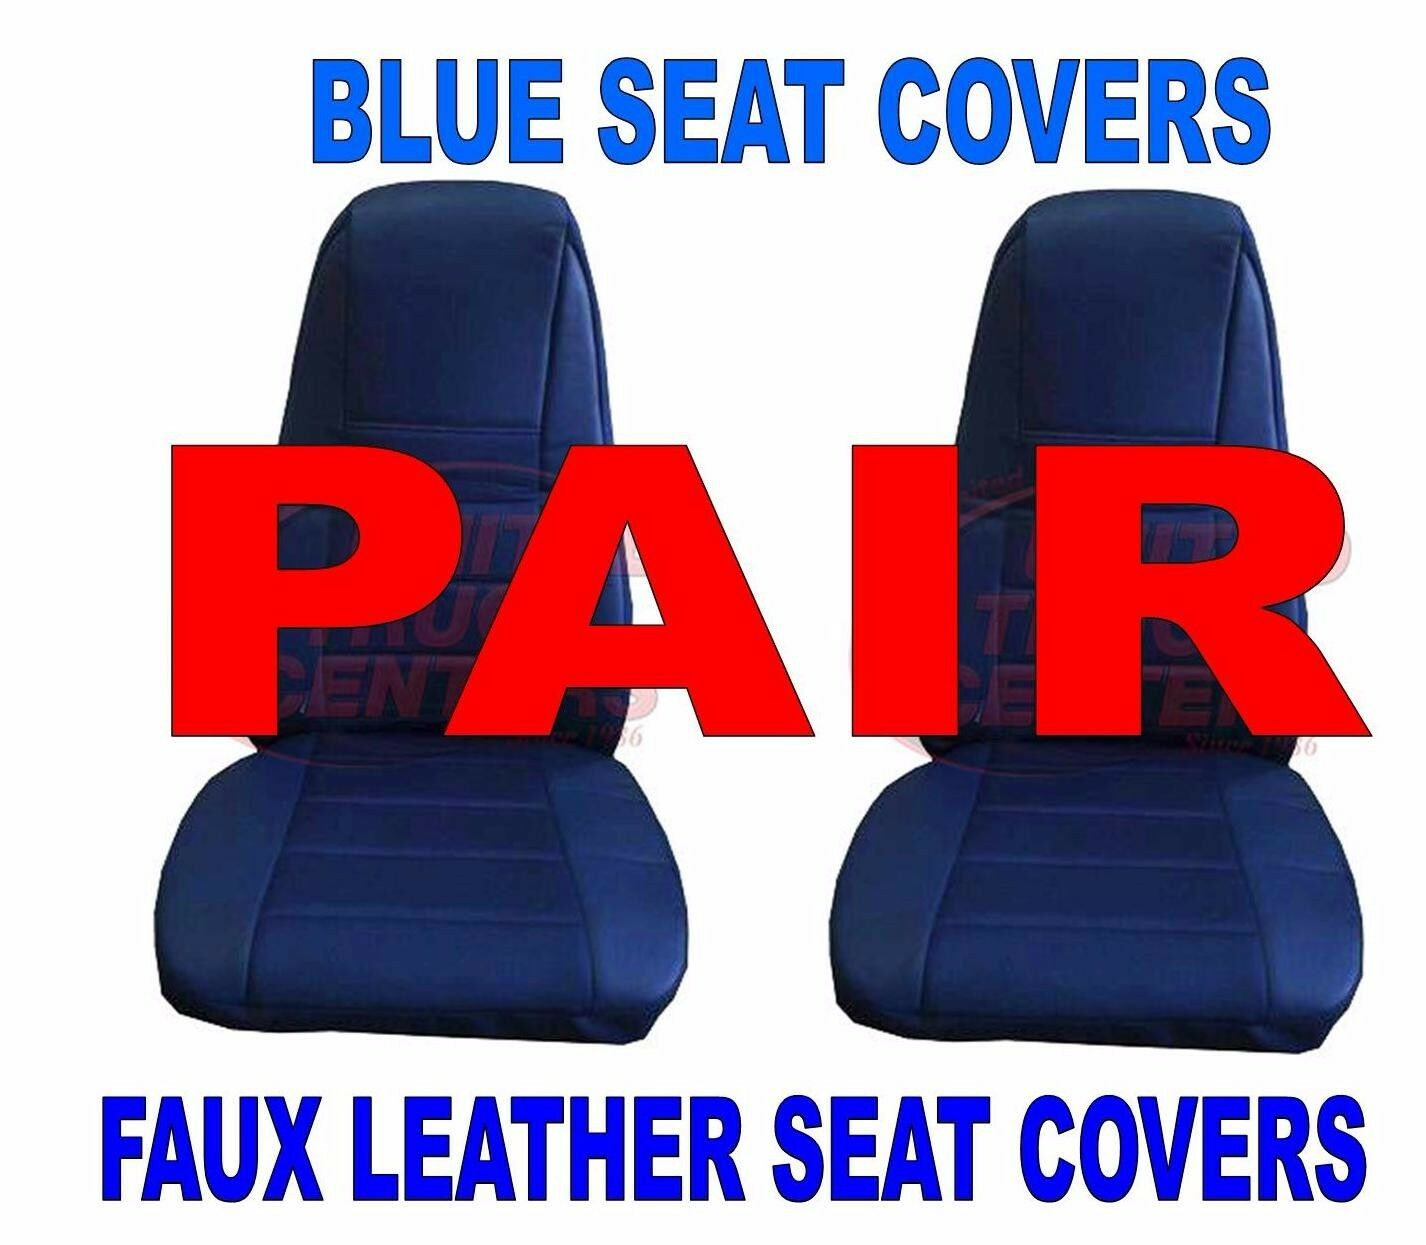 Blue Faux Leather Truck Seat Covers with Pocket, Pair